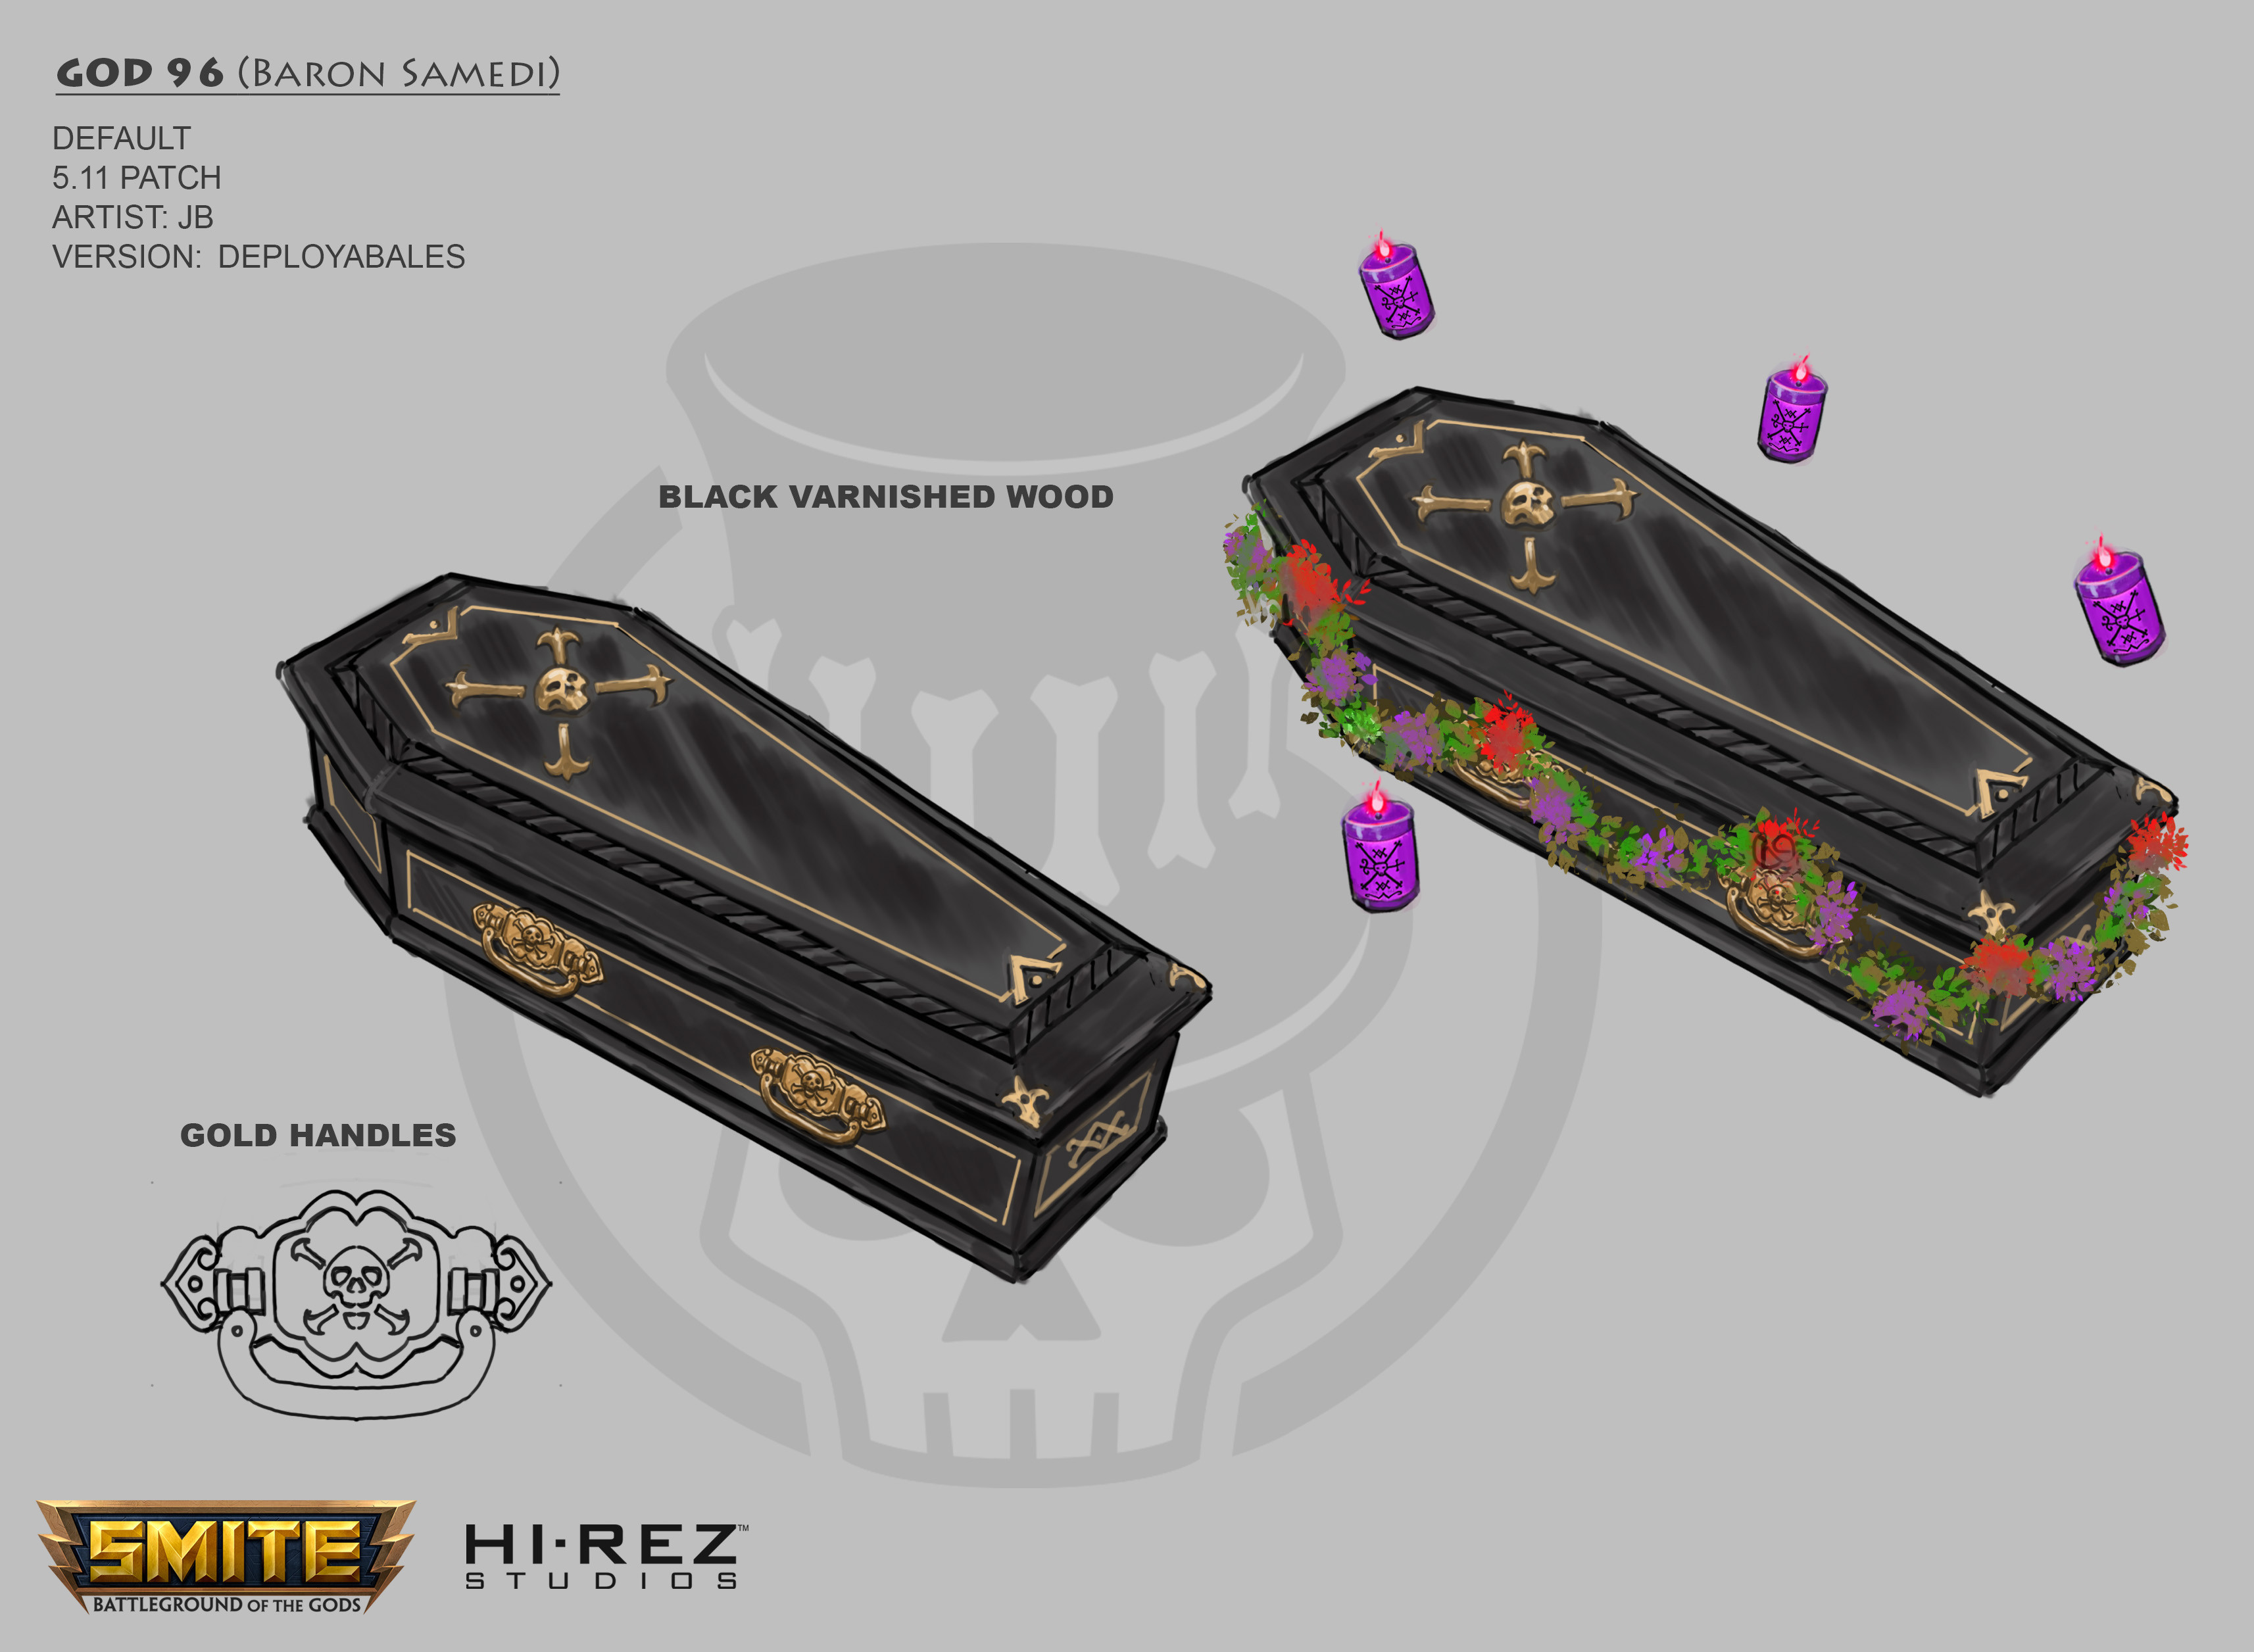 concept for the Baron's coffin deployable